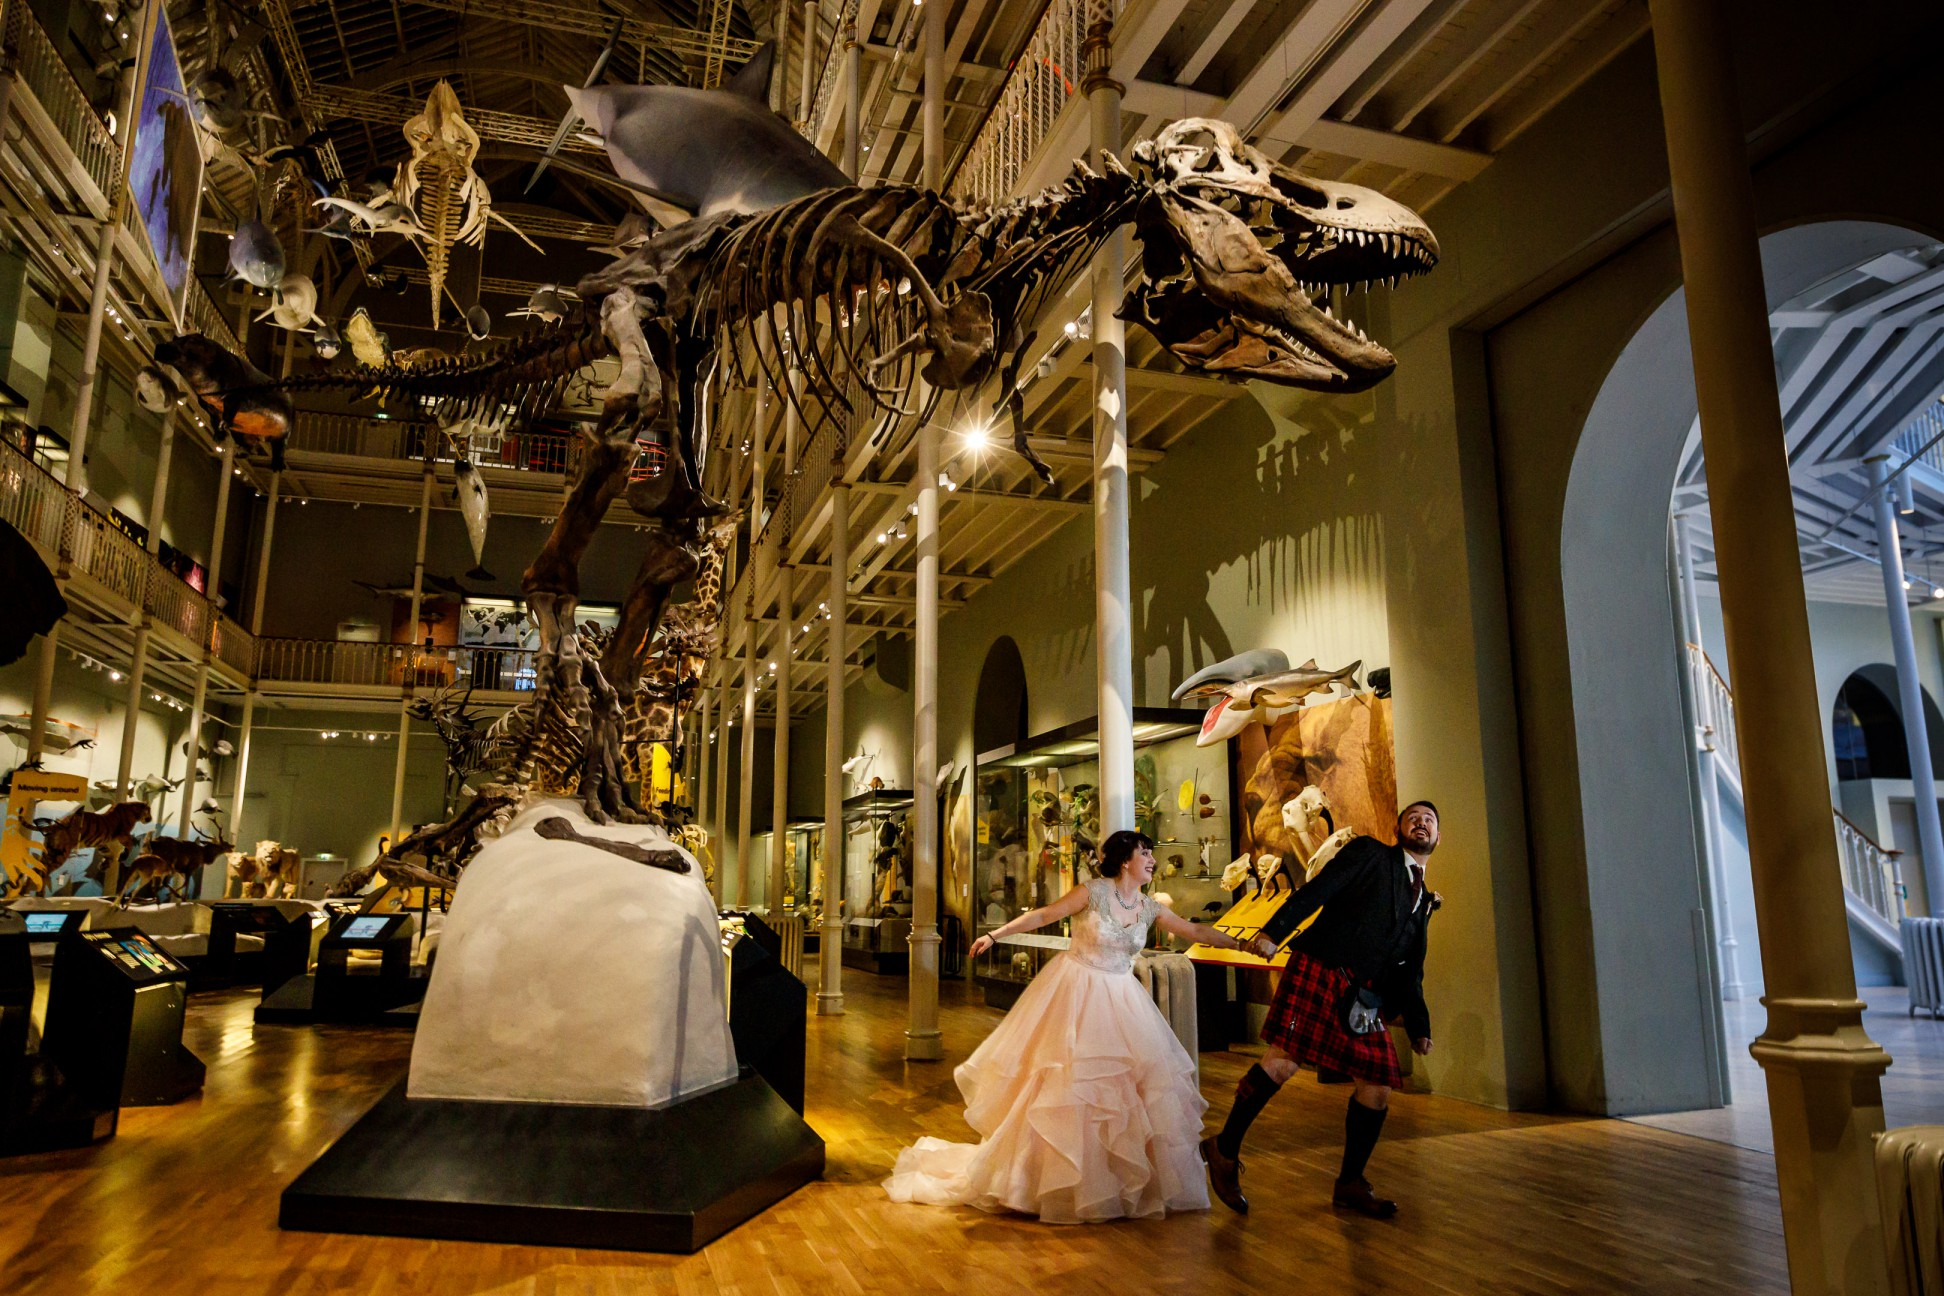 Wedding Photo in Museum by T Rex Fossil-Unique Wedding Venues- Unconventional Wedding- Lina & Tom Photography-